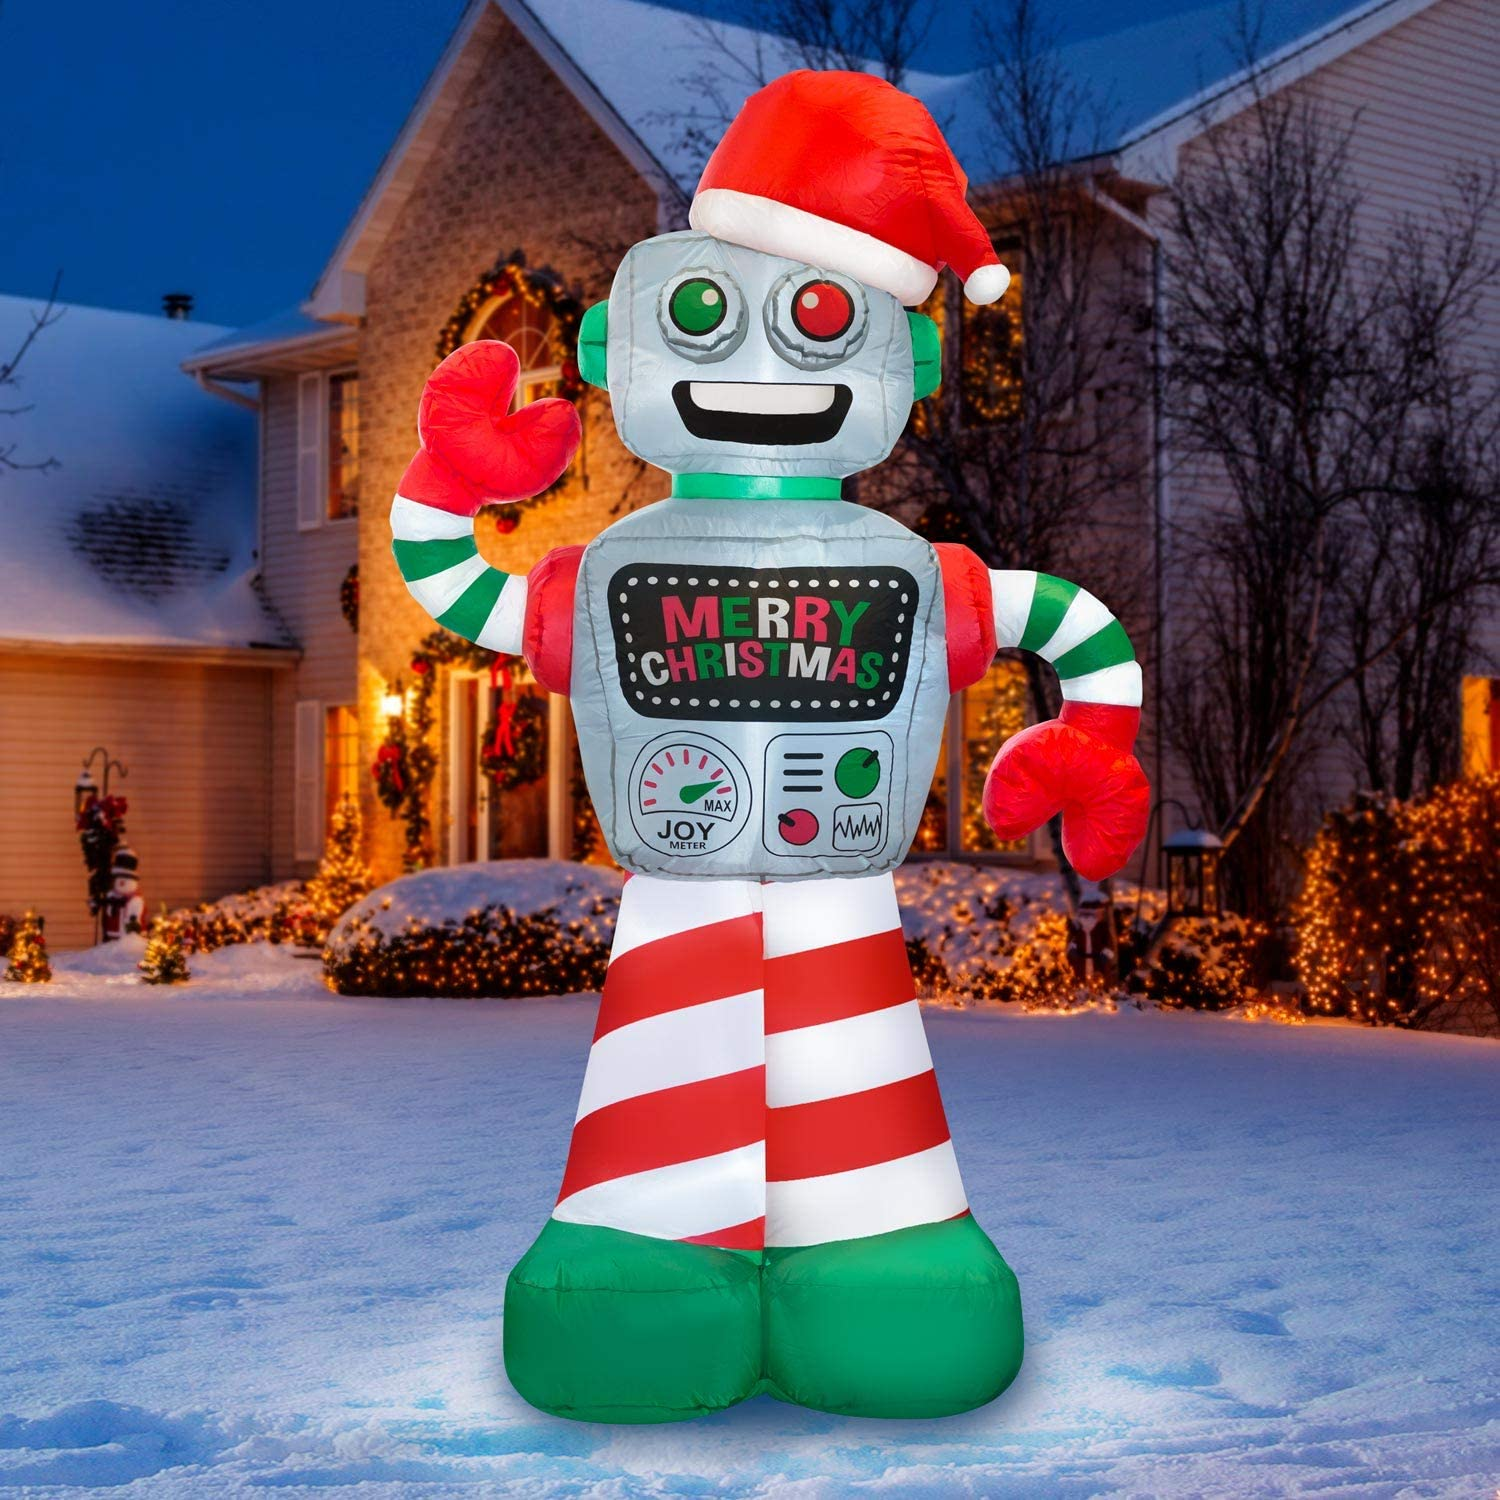 Holidayana 6 ft Detroit Mall Max 43% OFF Christmas Inflatable - Robot Yard Decoration f